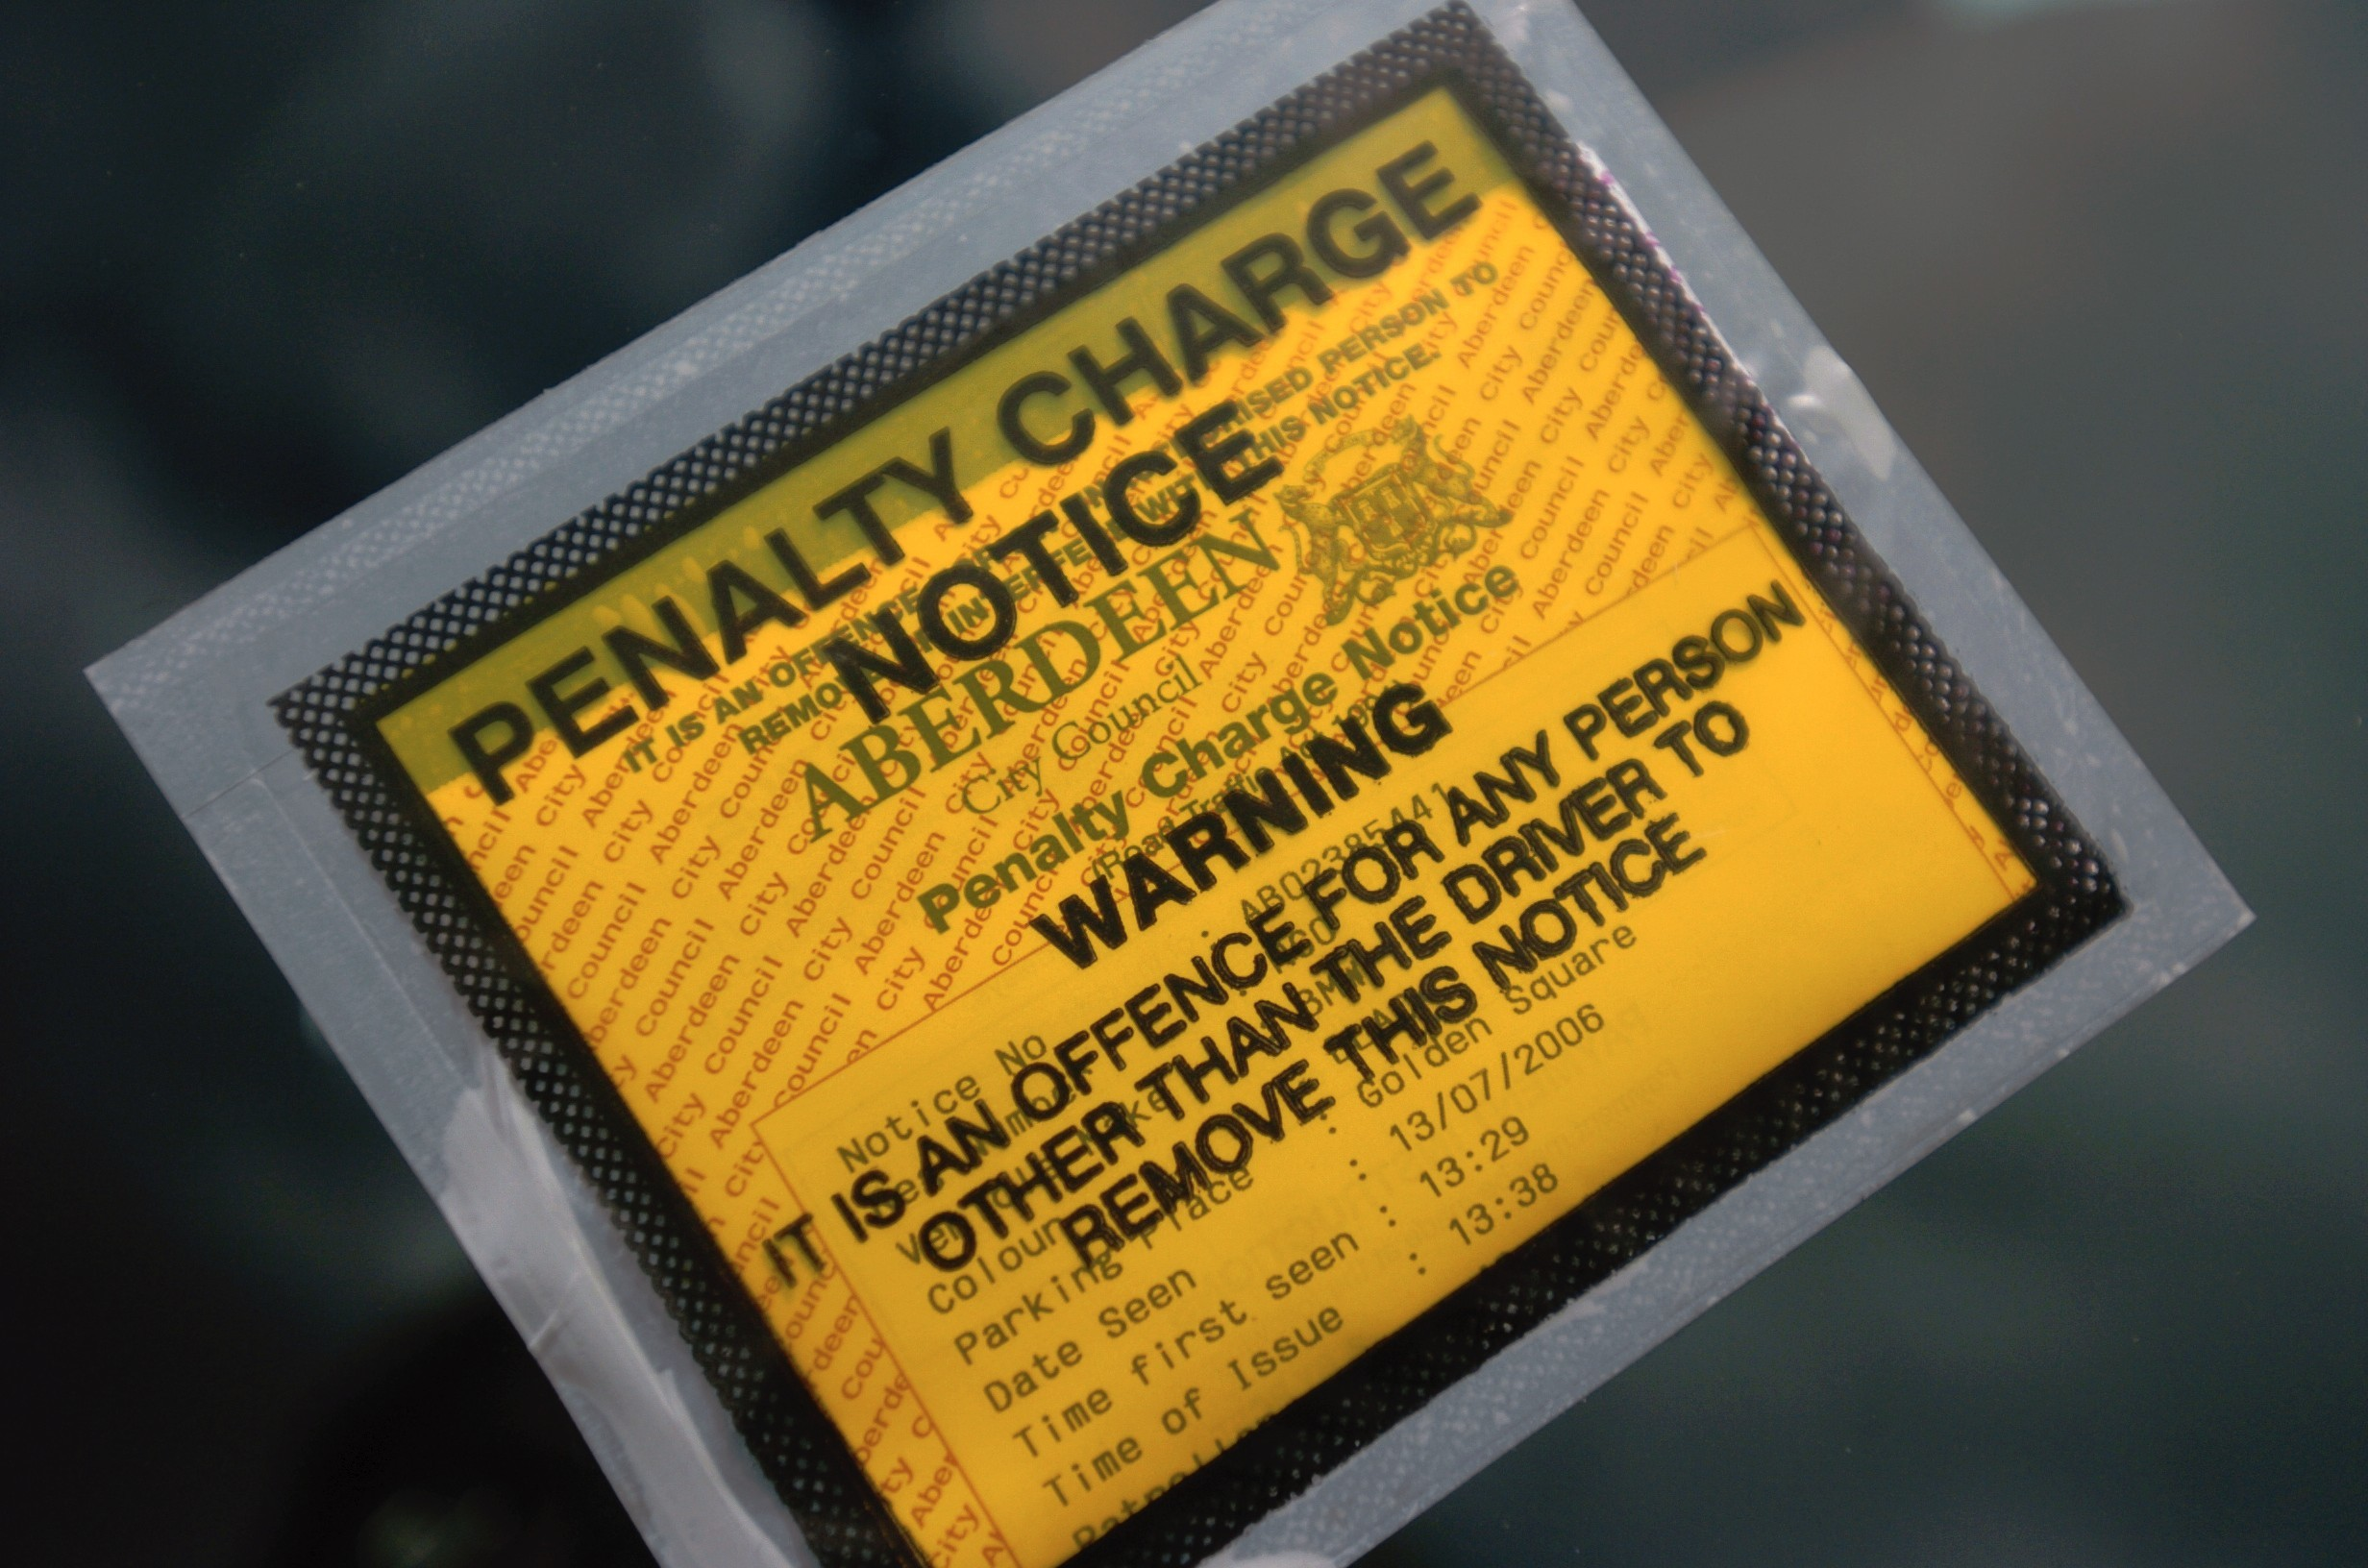 One car has racked up £21,270 in outstanding parking fines.